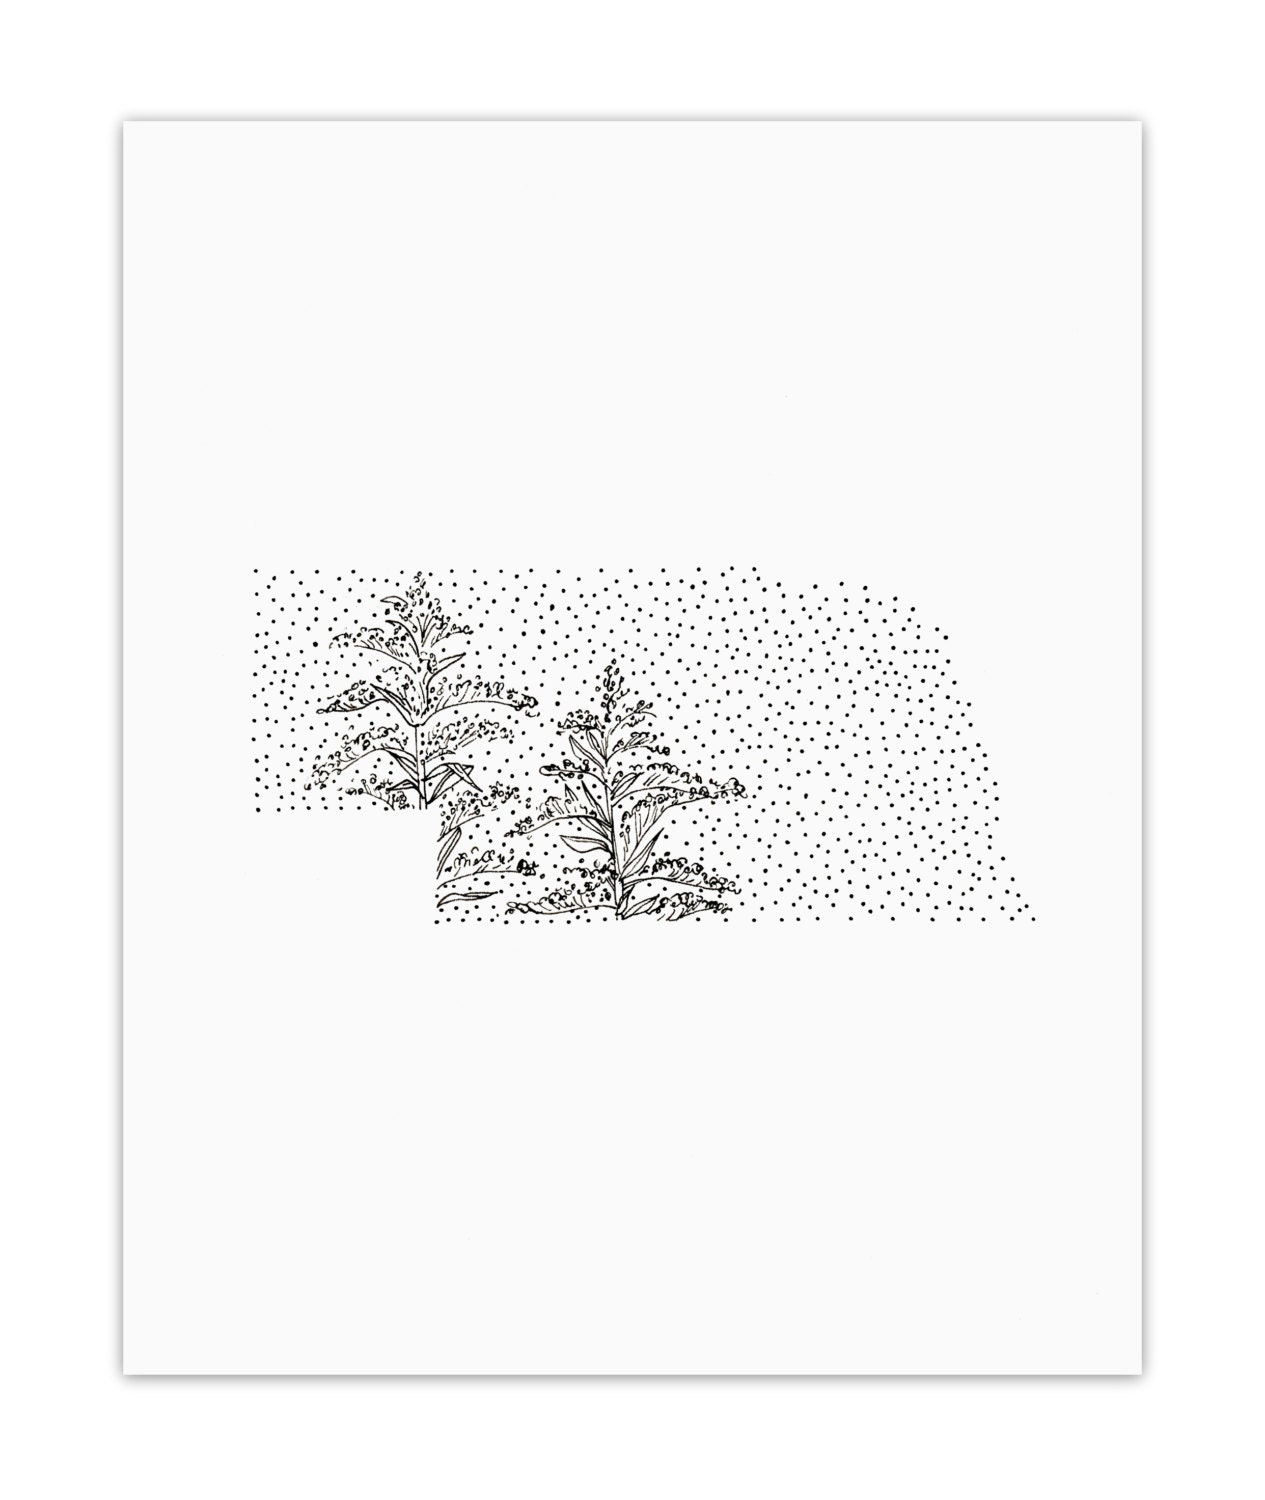 Nebraska Goldenrod State Flower Drawing Giclee